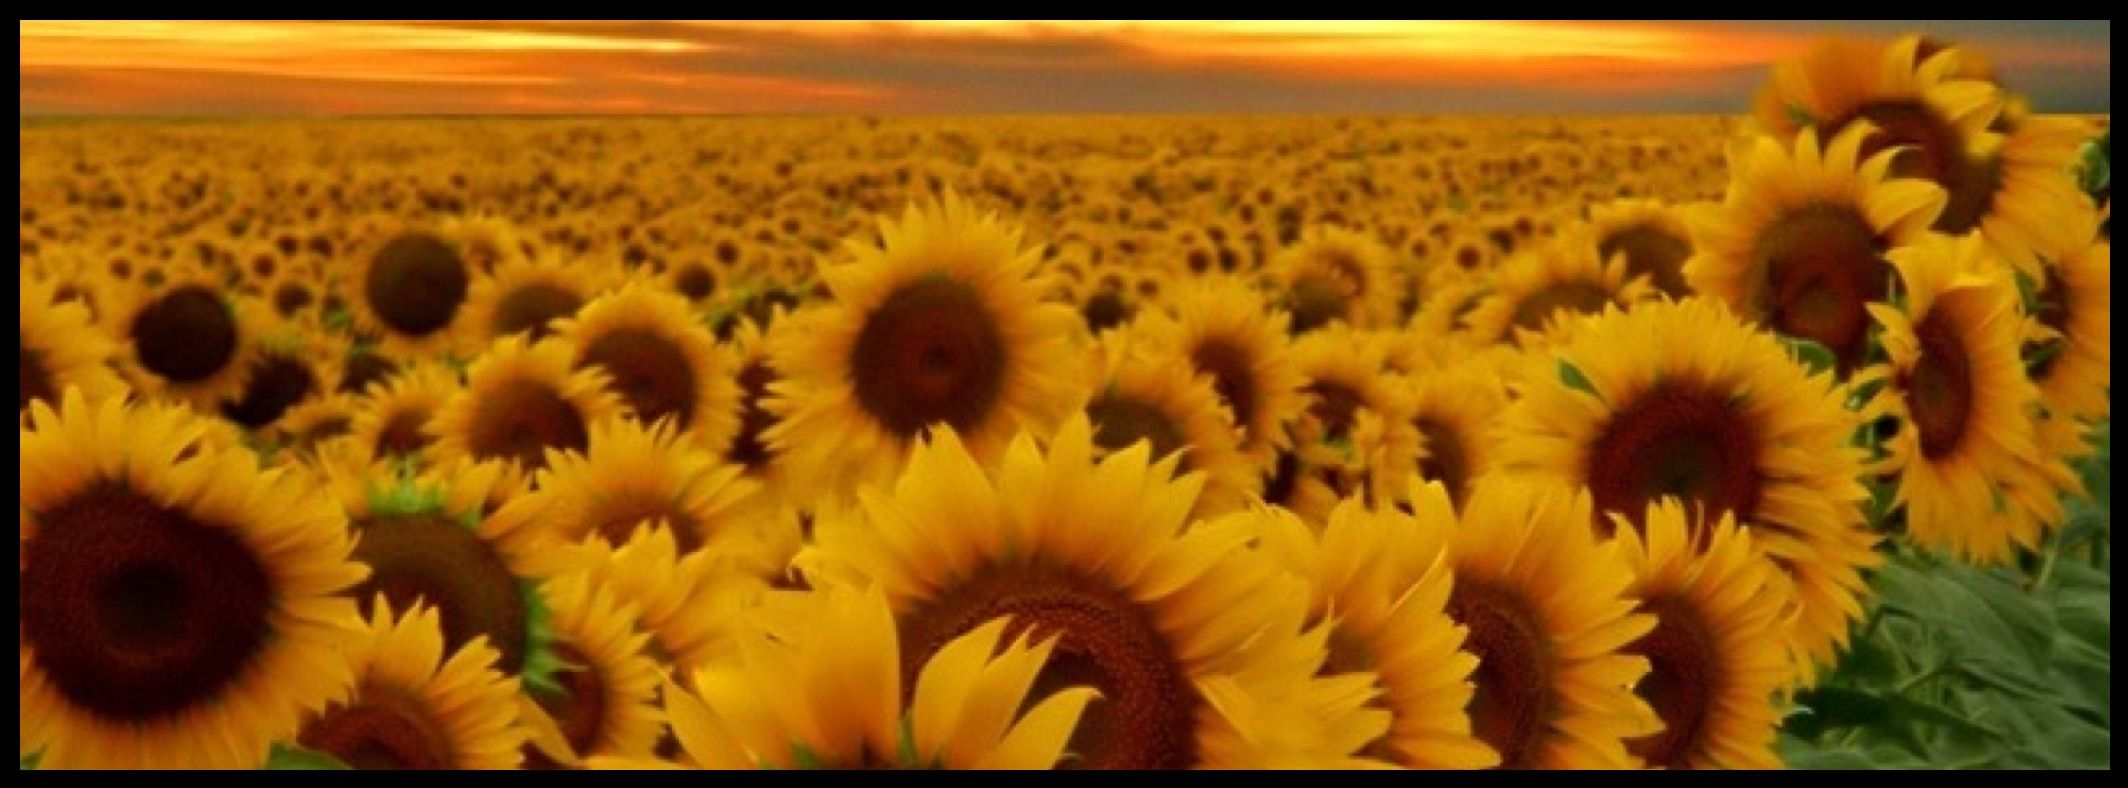 Sunflowers, Facebook cover photo | Loveee! | Pinterest